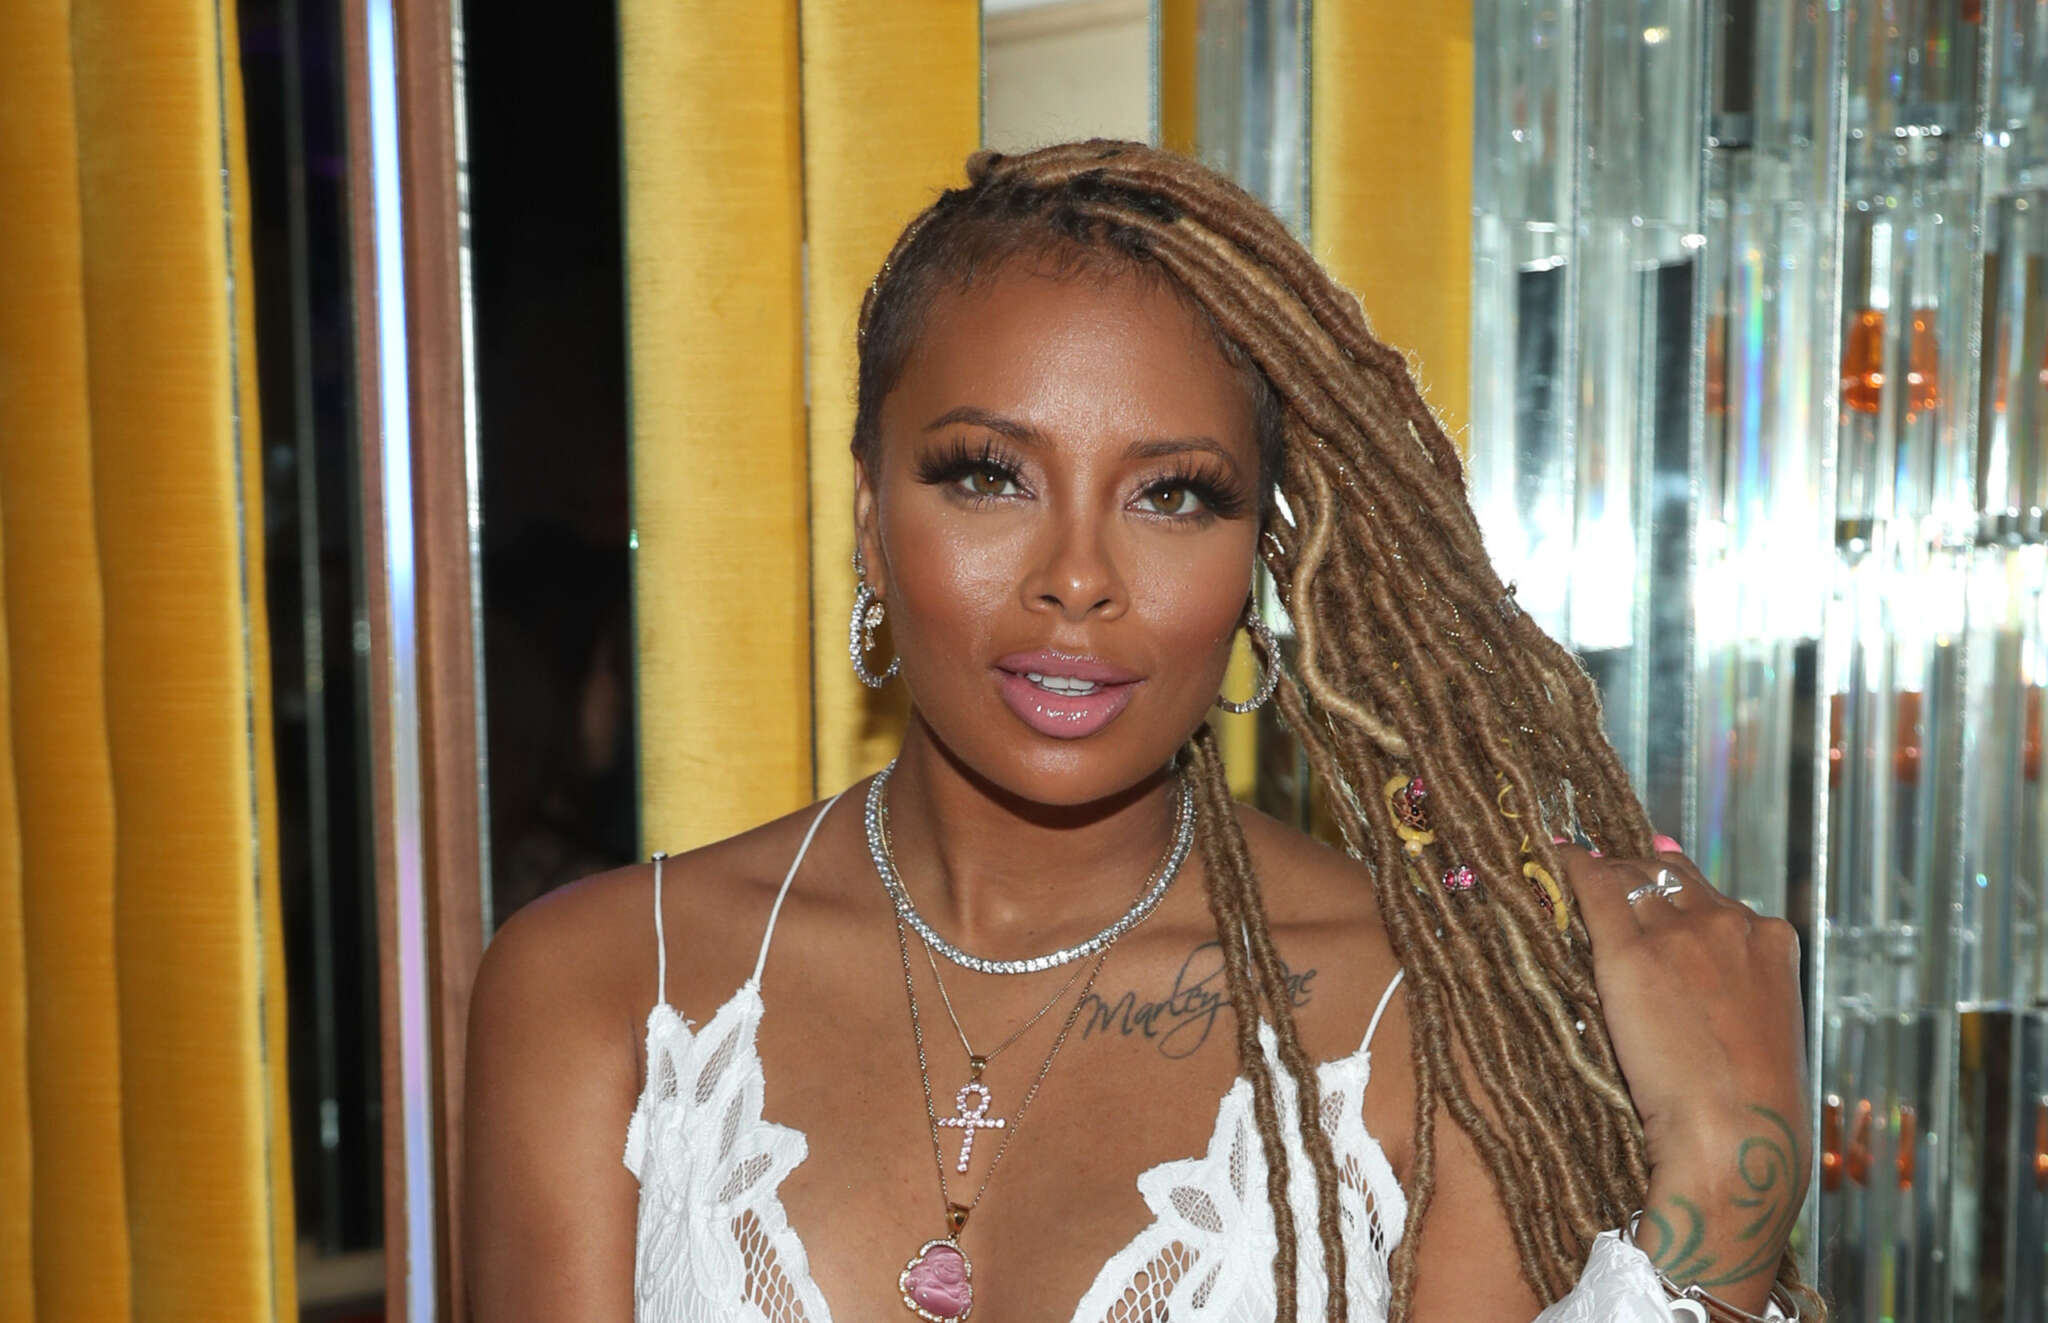 Eva Marcille Honors An Important Man - Check Out The Video That She Shared On Social Media